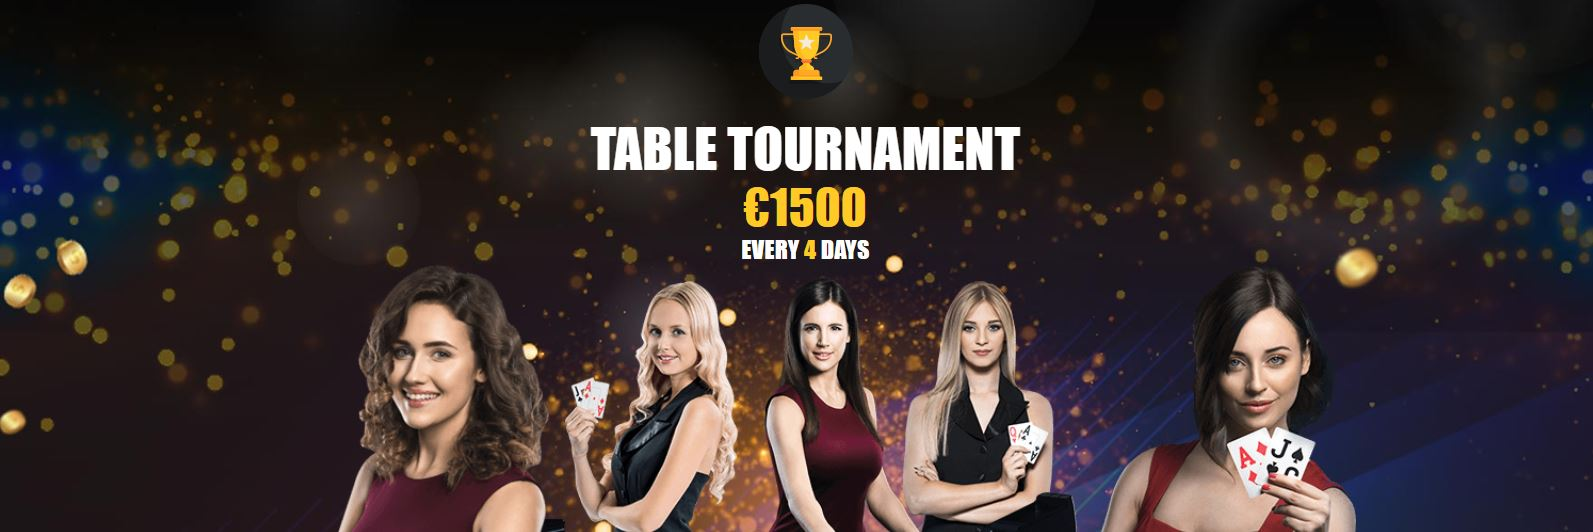 Table Tournaments